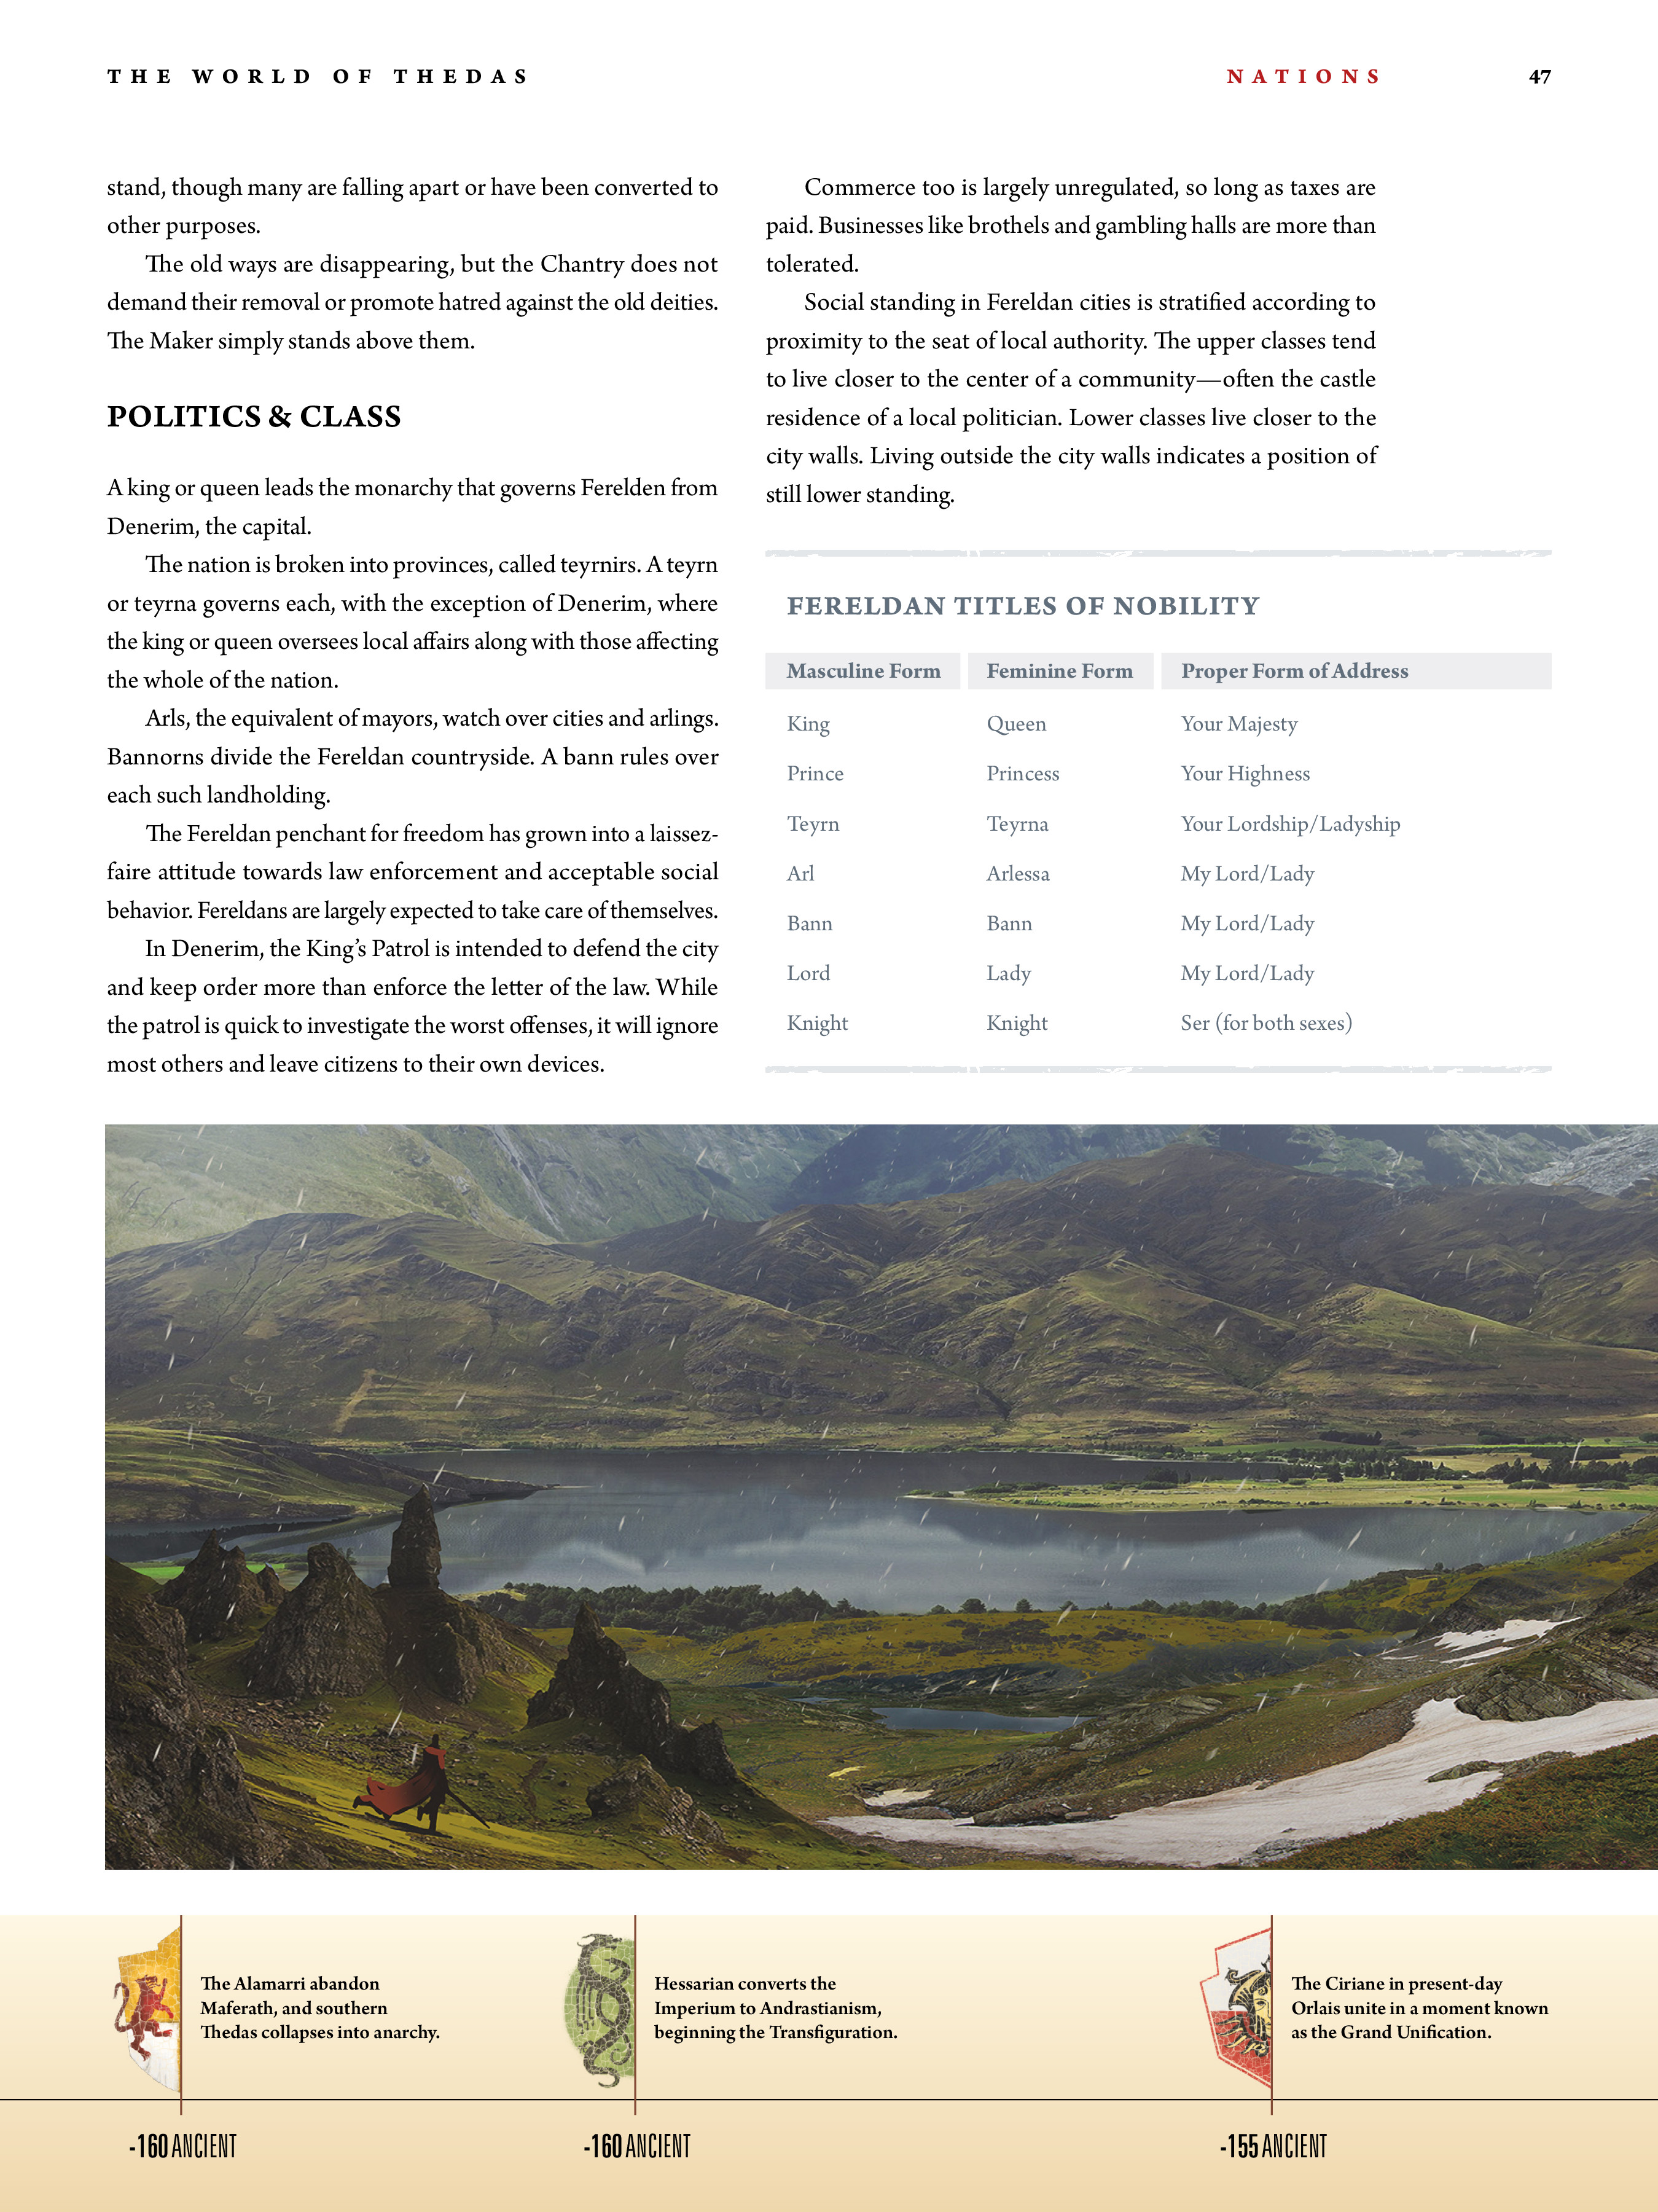 Read online Dragon Age: The World of Thedas comic -  Issue # TPB 1 - 38